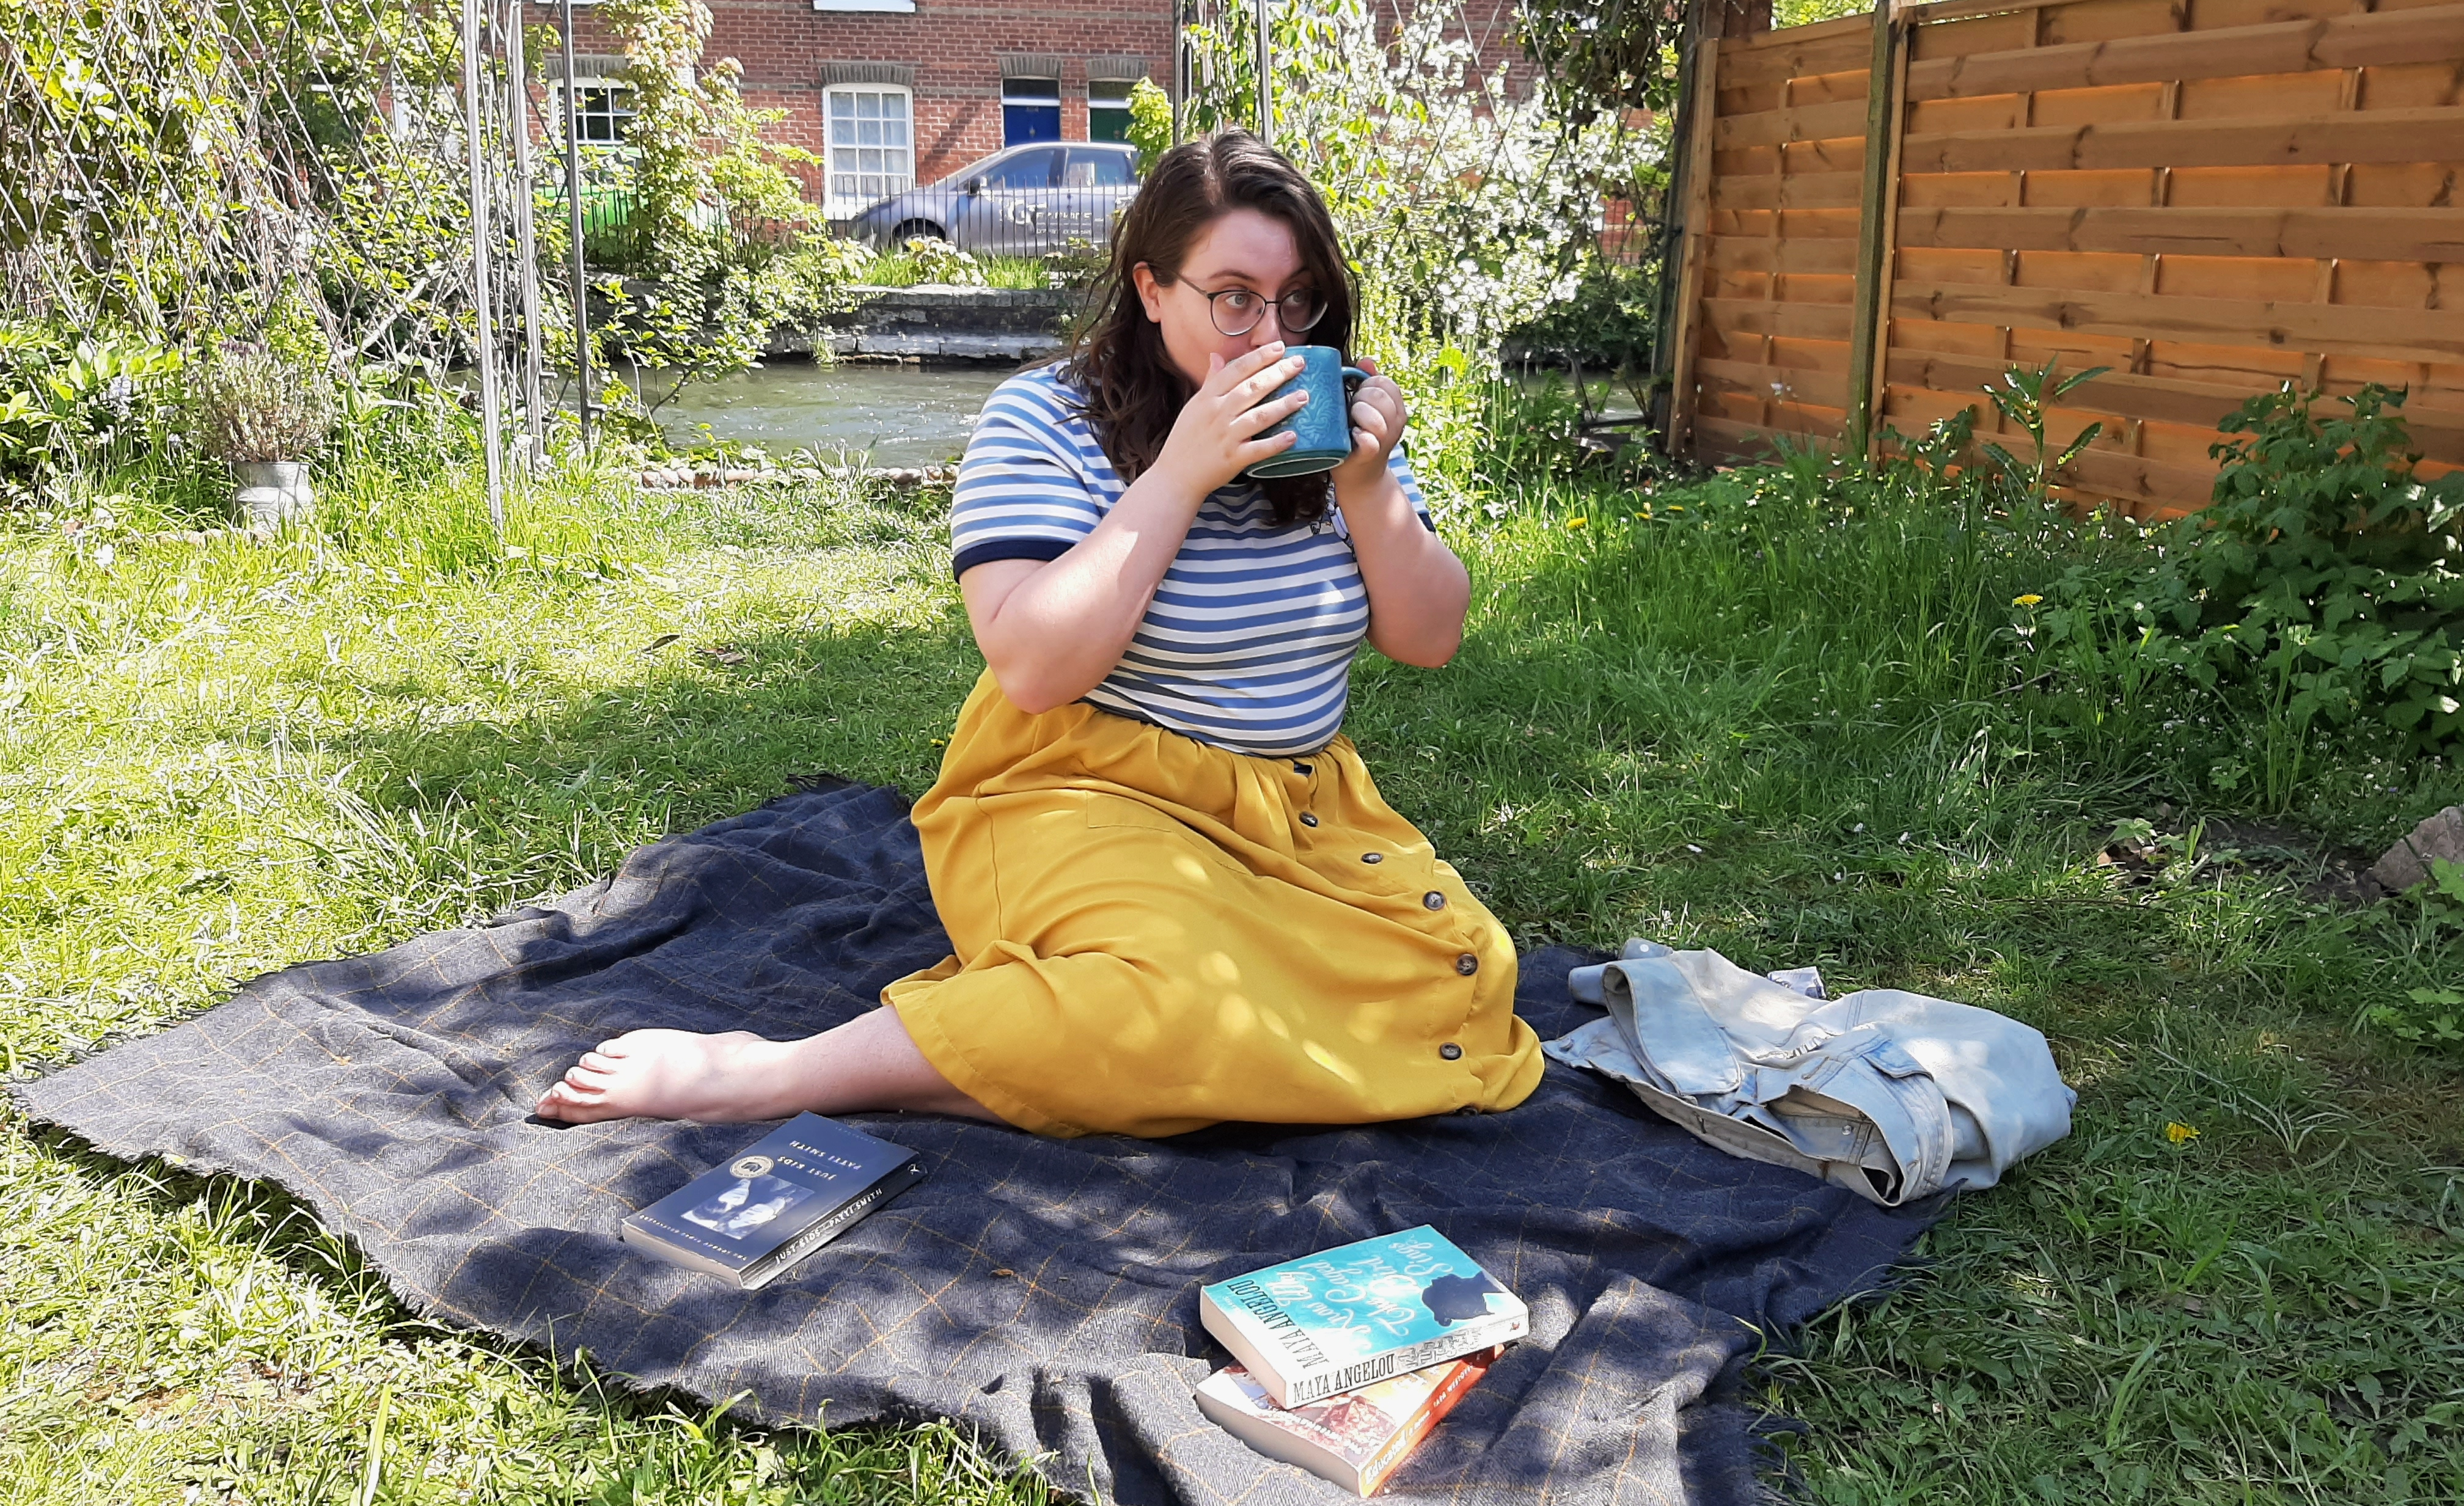 Rosie drinking a mug of tea in her garden, accompanied by some books